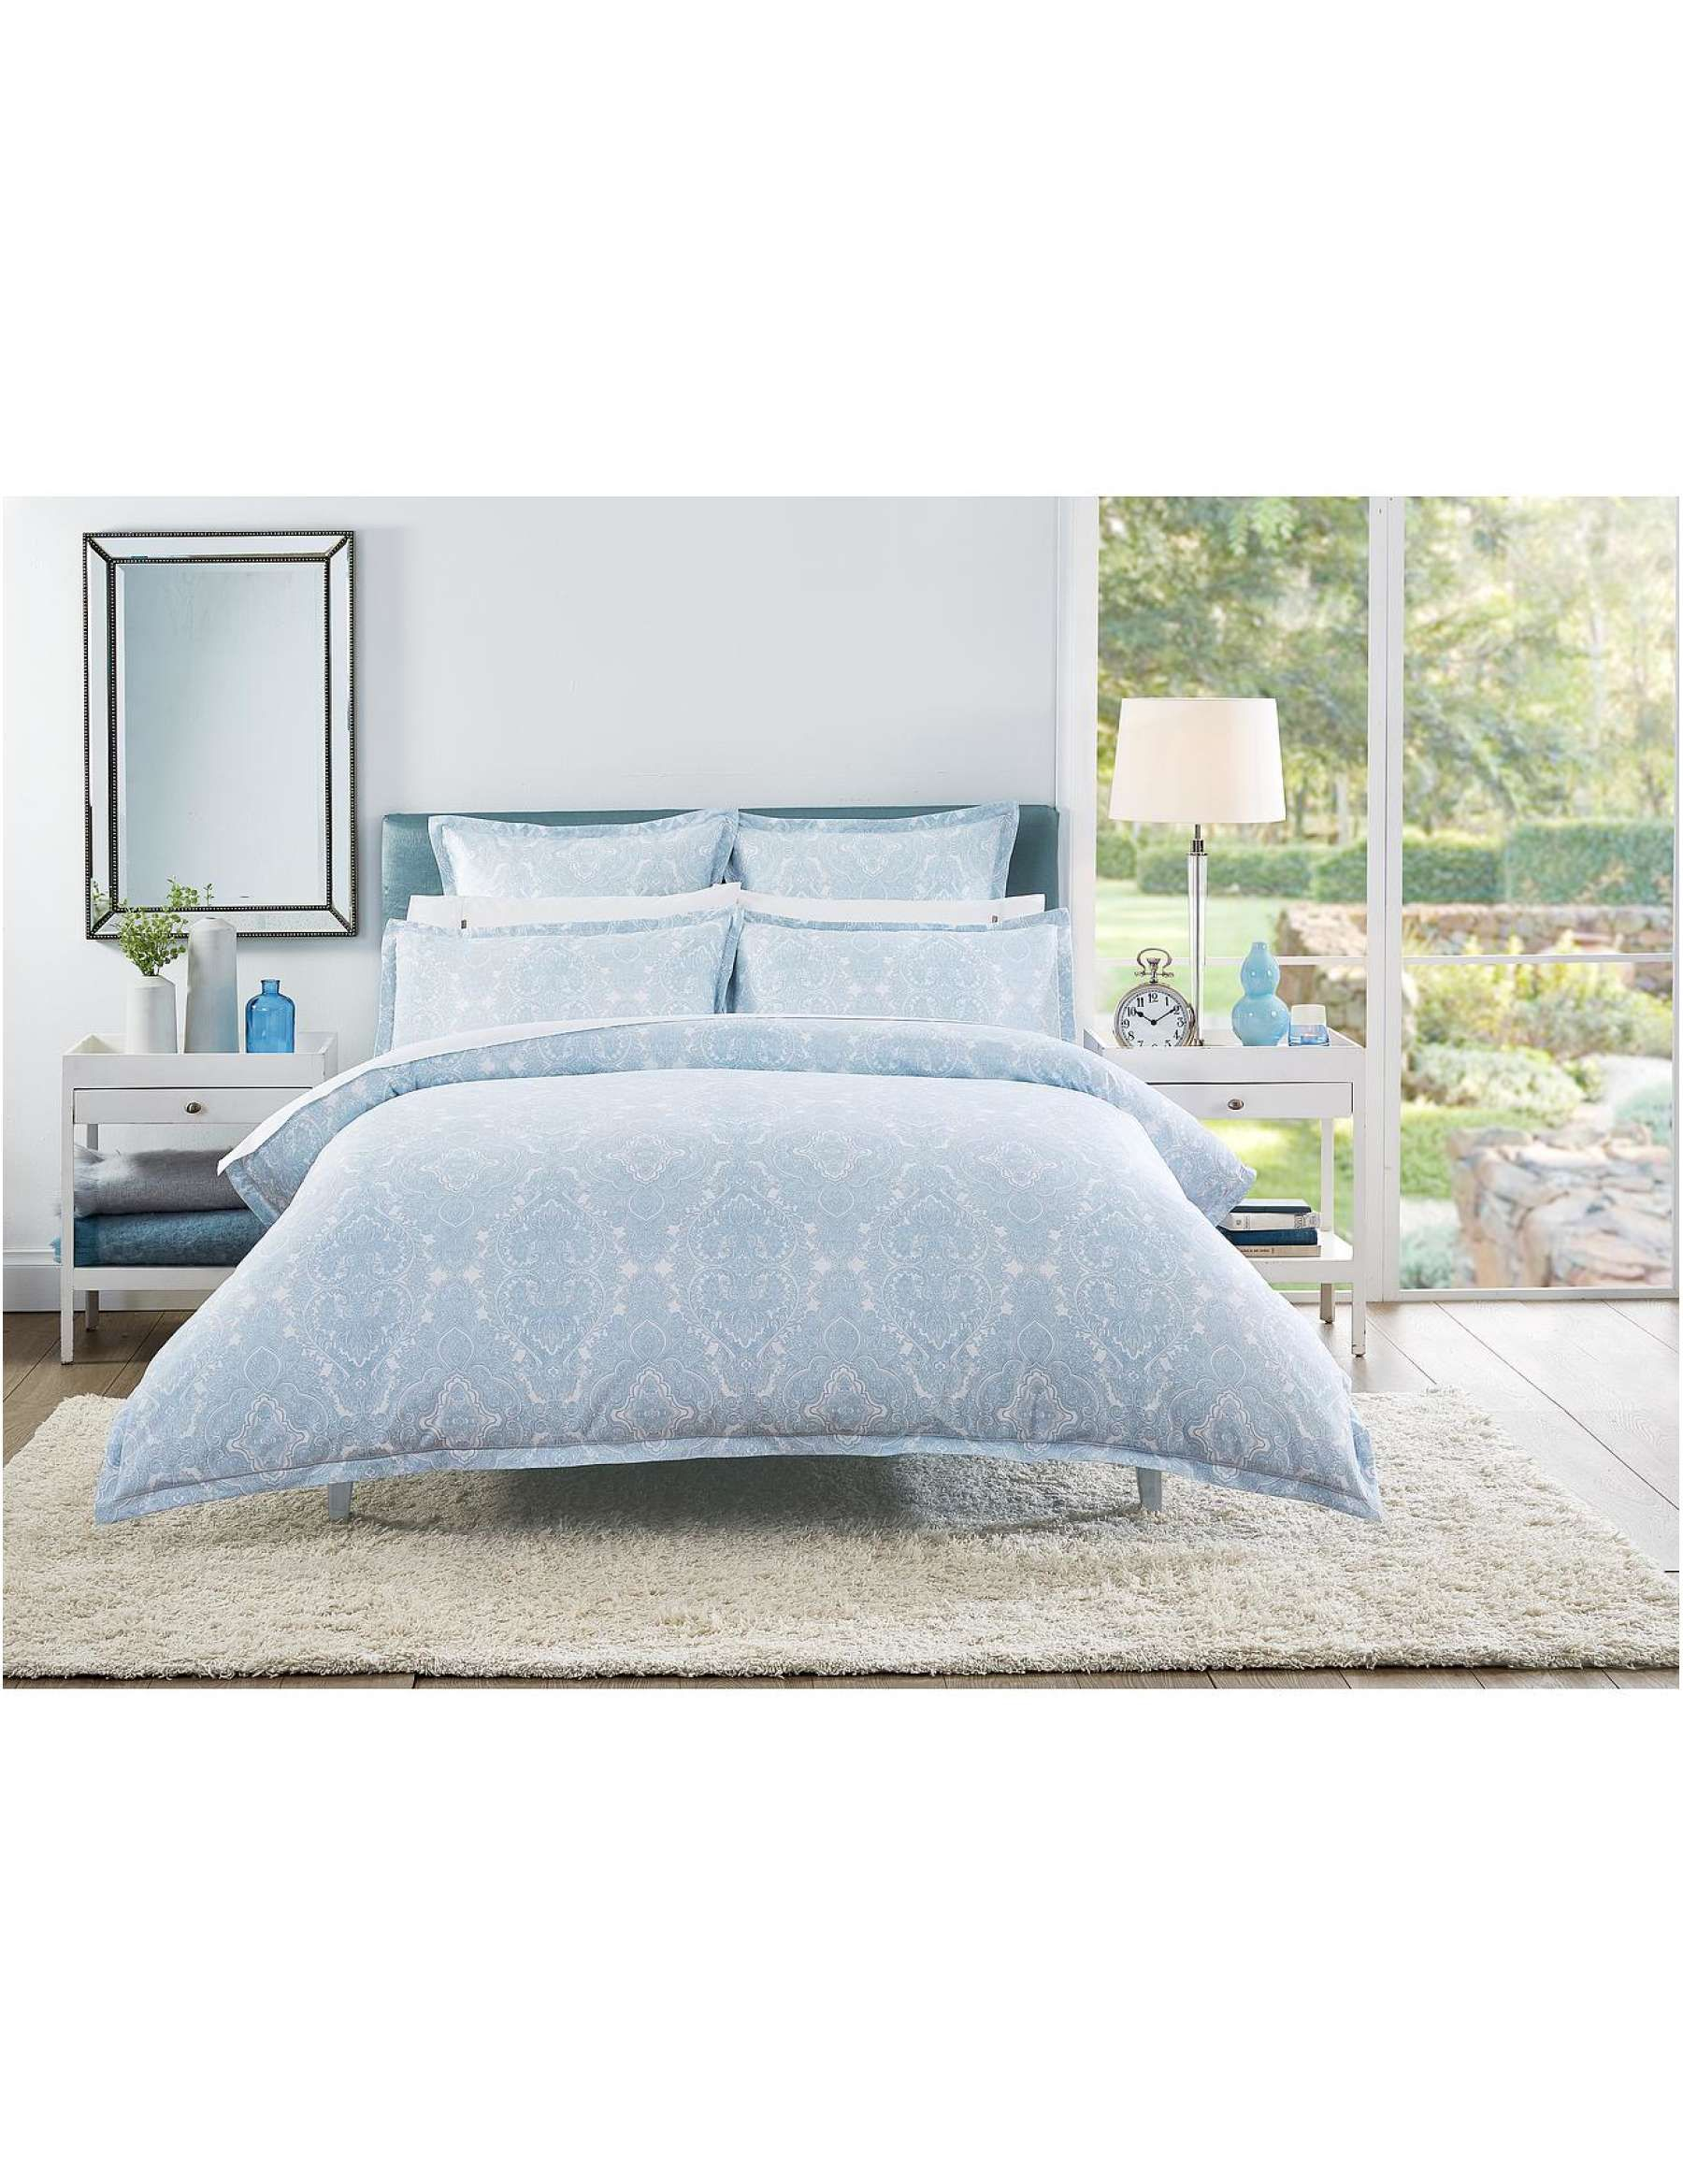 David Jones Cotton House Ninevah Double Bed Quilt Cover